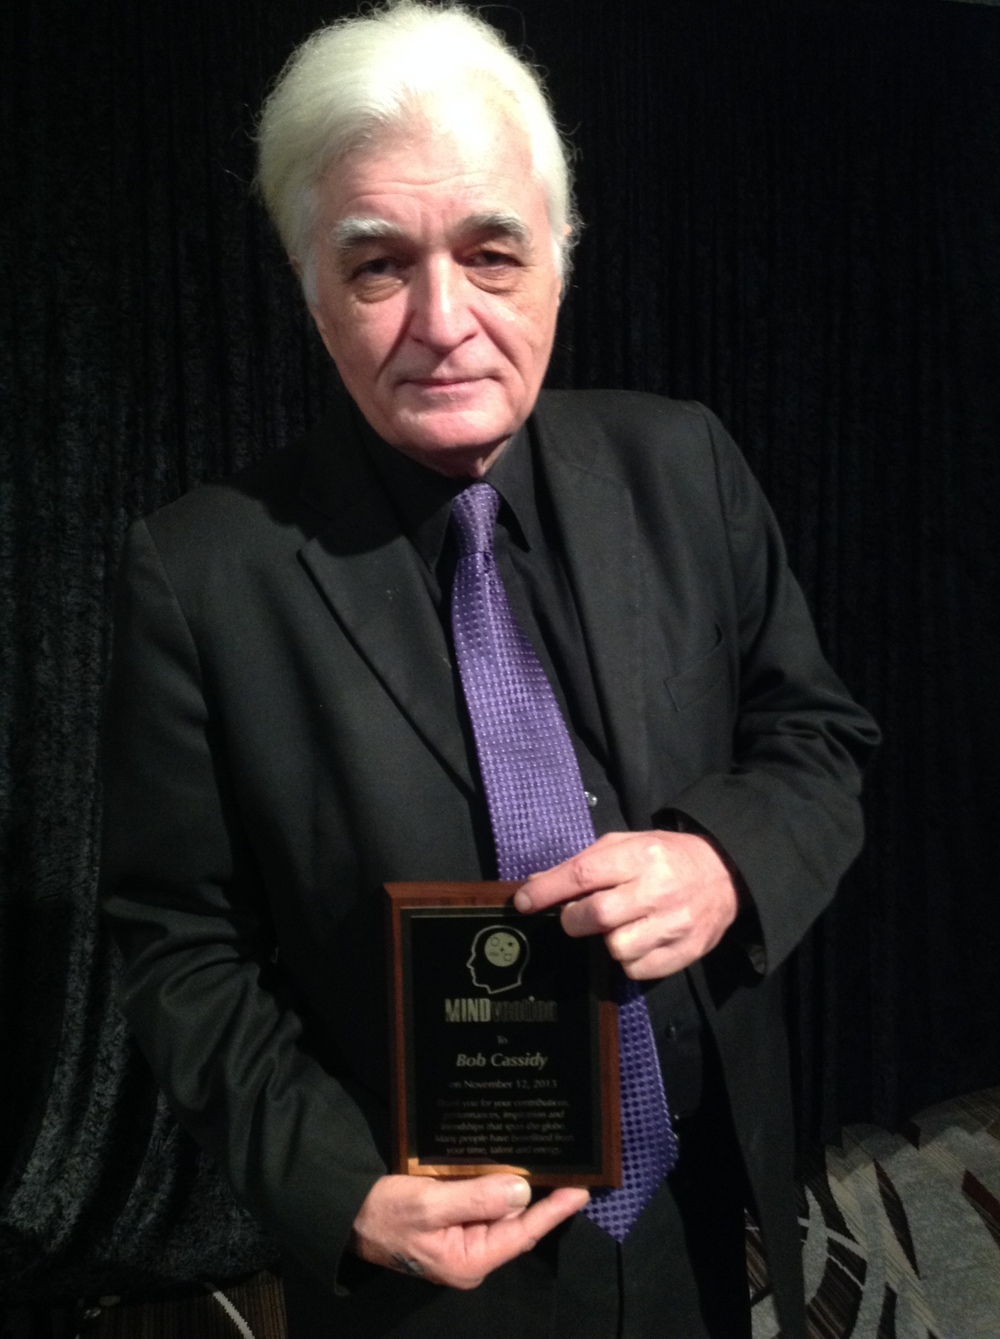 Bob Cassidy receives Lifetime Achievement Award